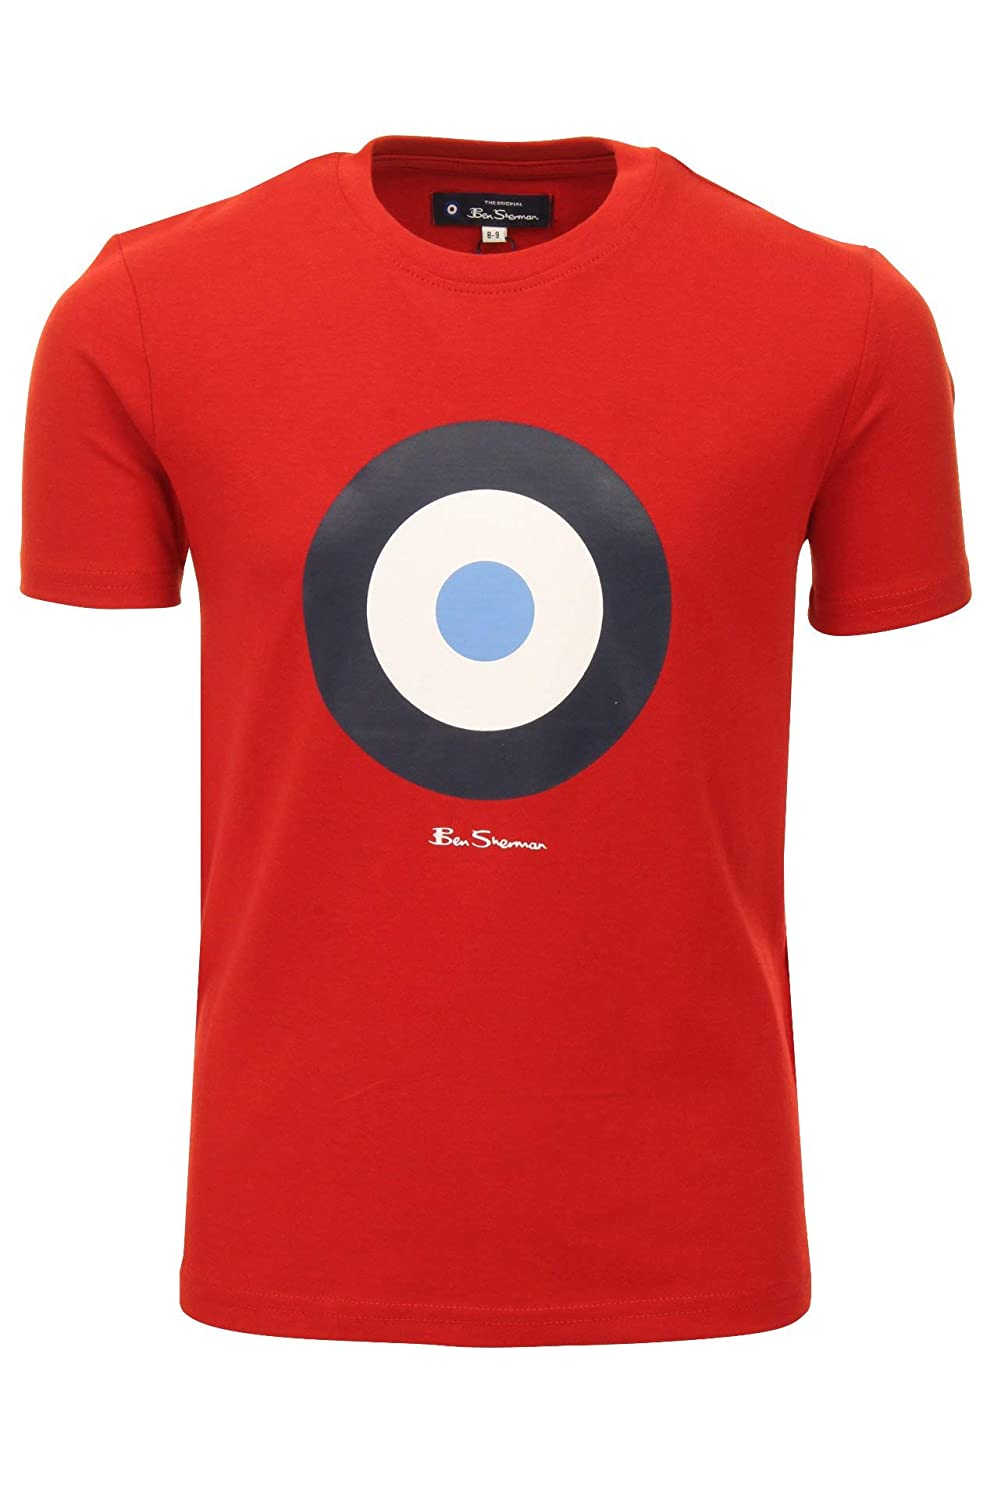 fe68ab1ec2c19c Ben Sherman Boys Target T-Shirt: Amazon.co.uk: Clothing